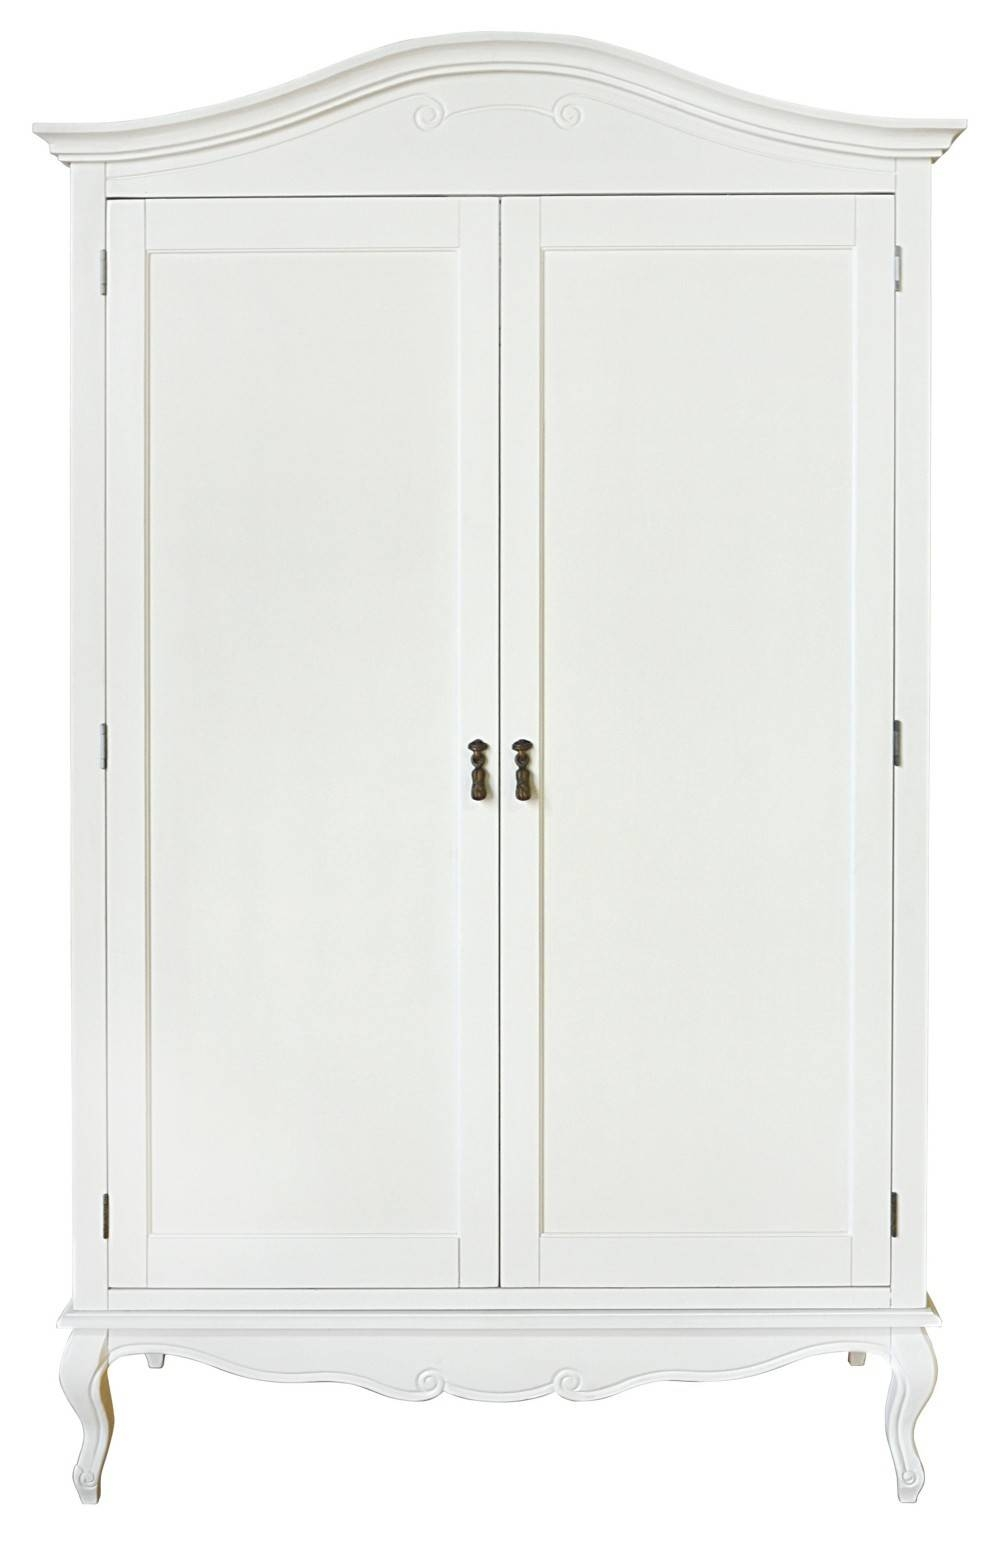 Wardrobes | Bedroom Furniture Direct intended for Childrens Double Rail Wardrobes (Image 30 of 30)